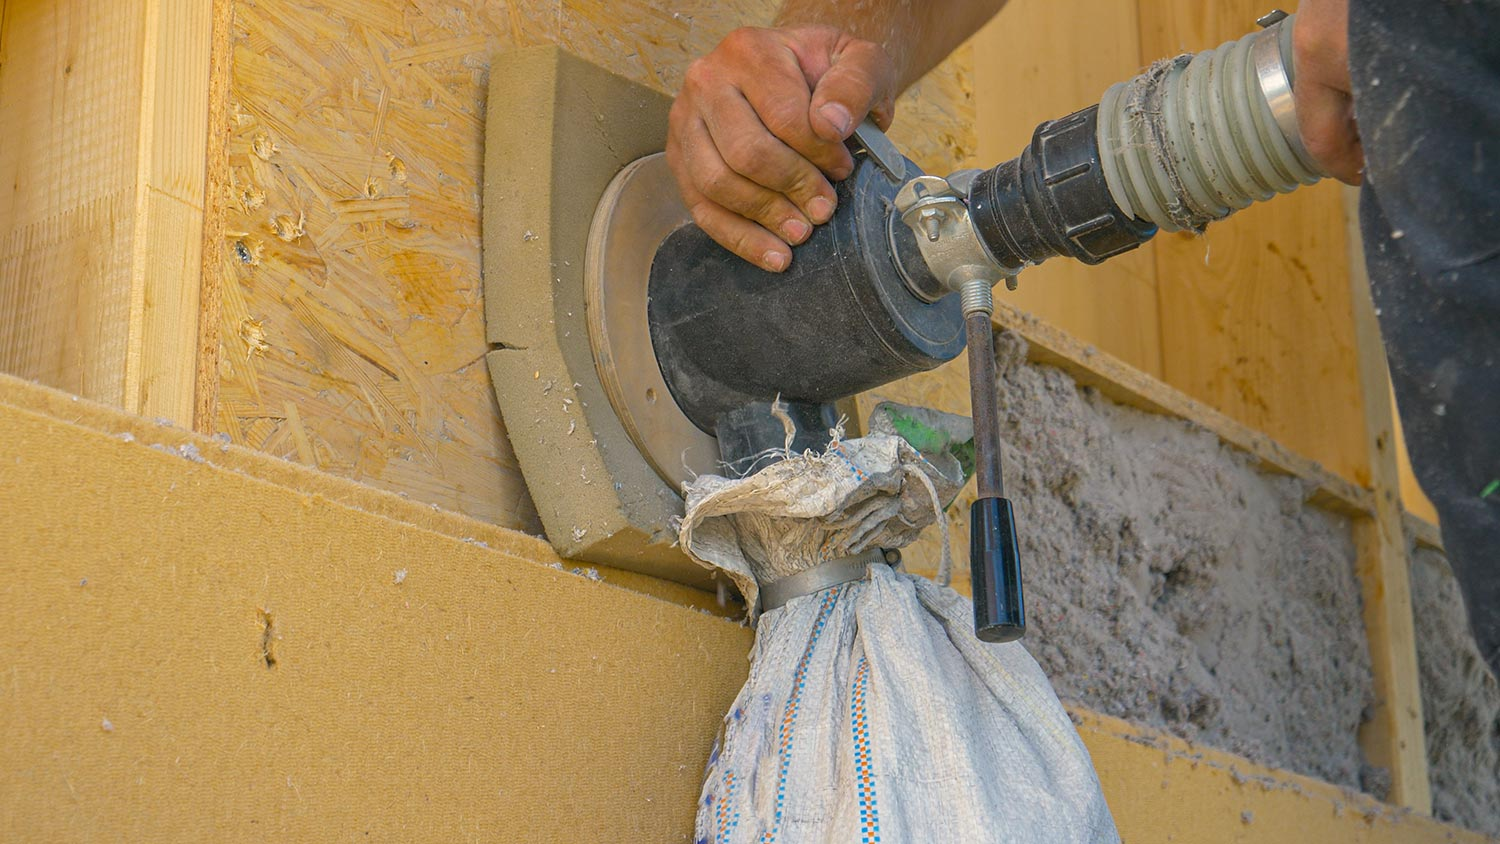 Builder uses a blower to insulate the wood wall with recycled paper